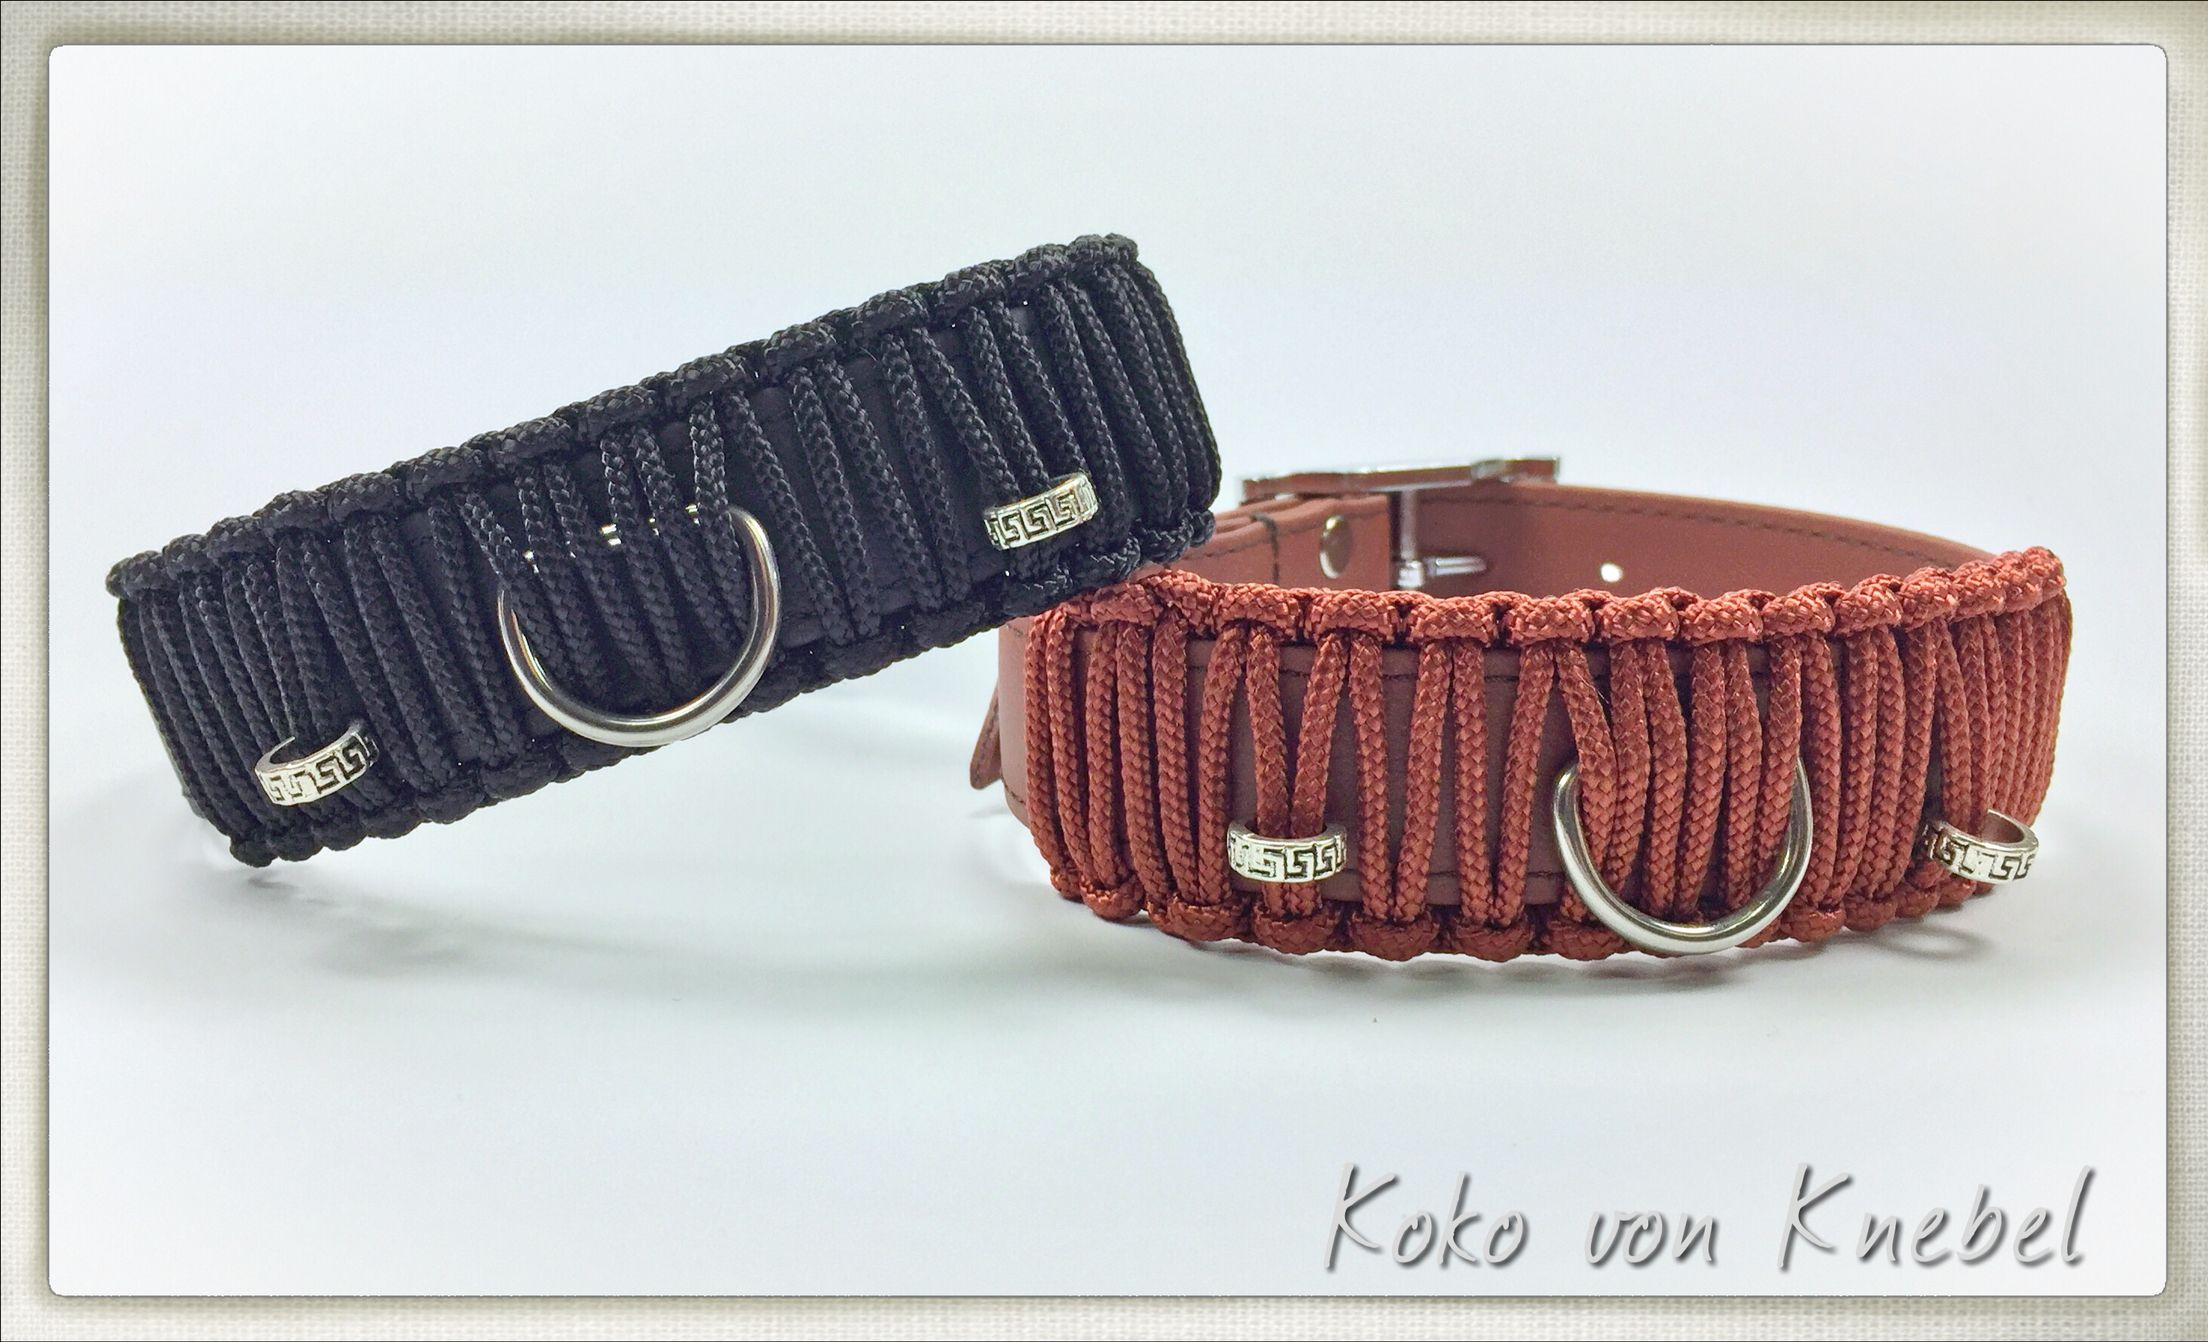 Looking for something sporty and attractive? This collar with braided cord is durable and waterproof! Handcrafted by Koko von Knebel